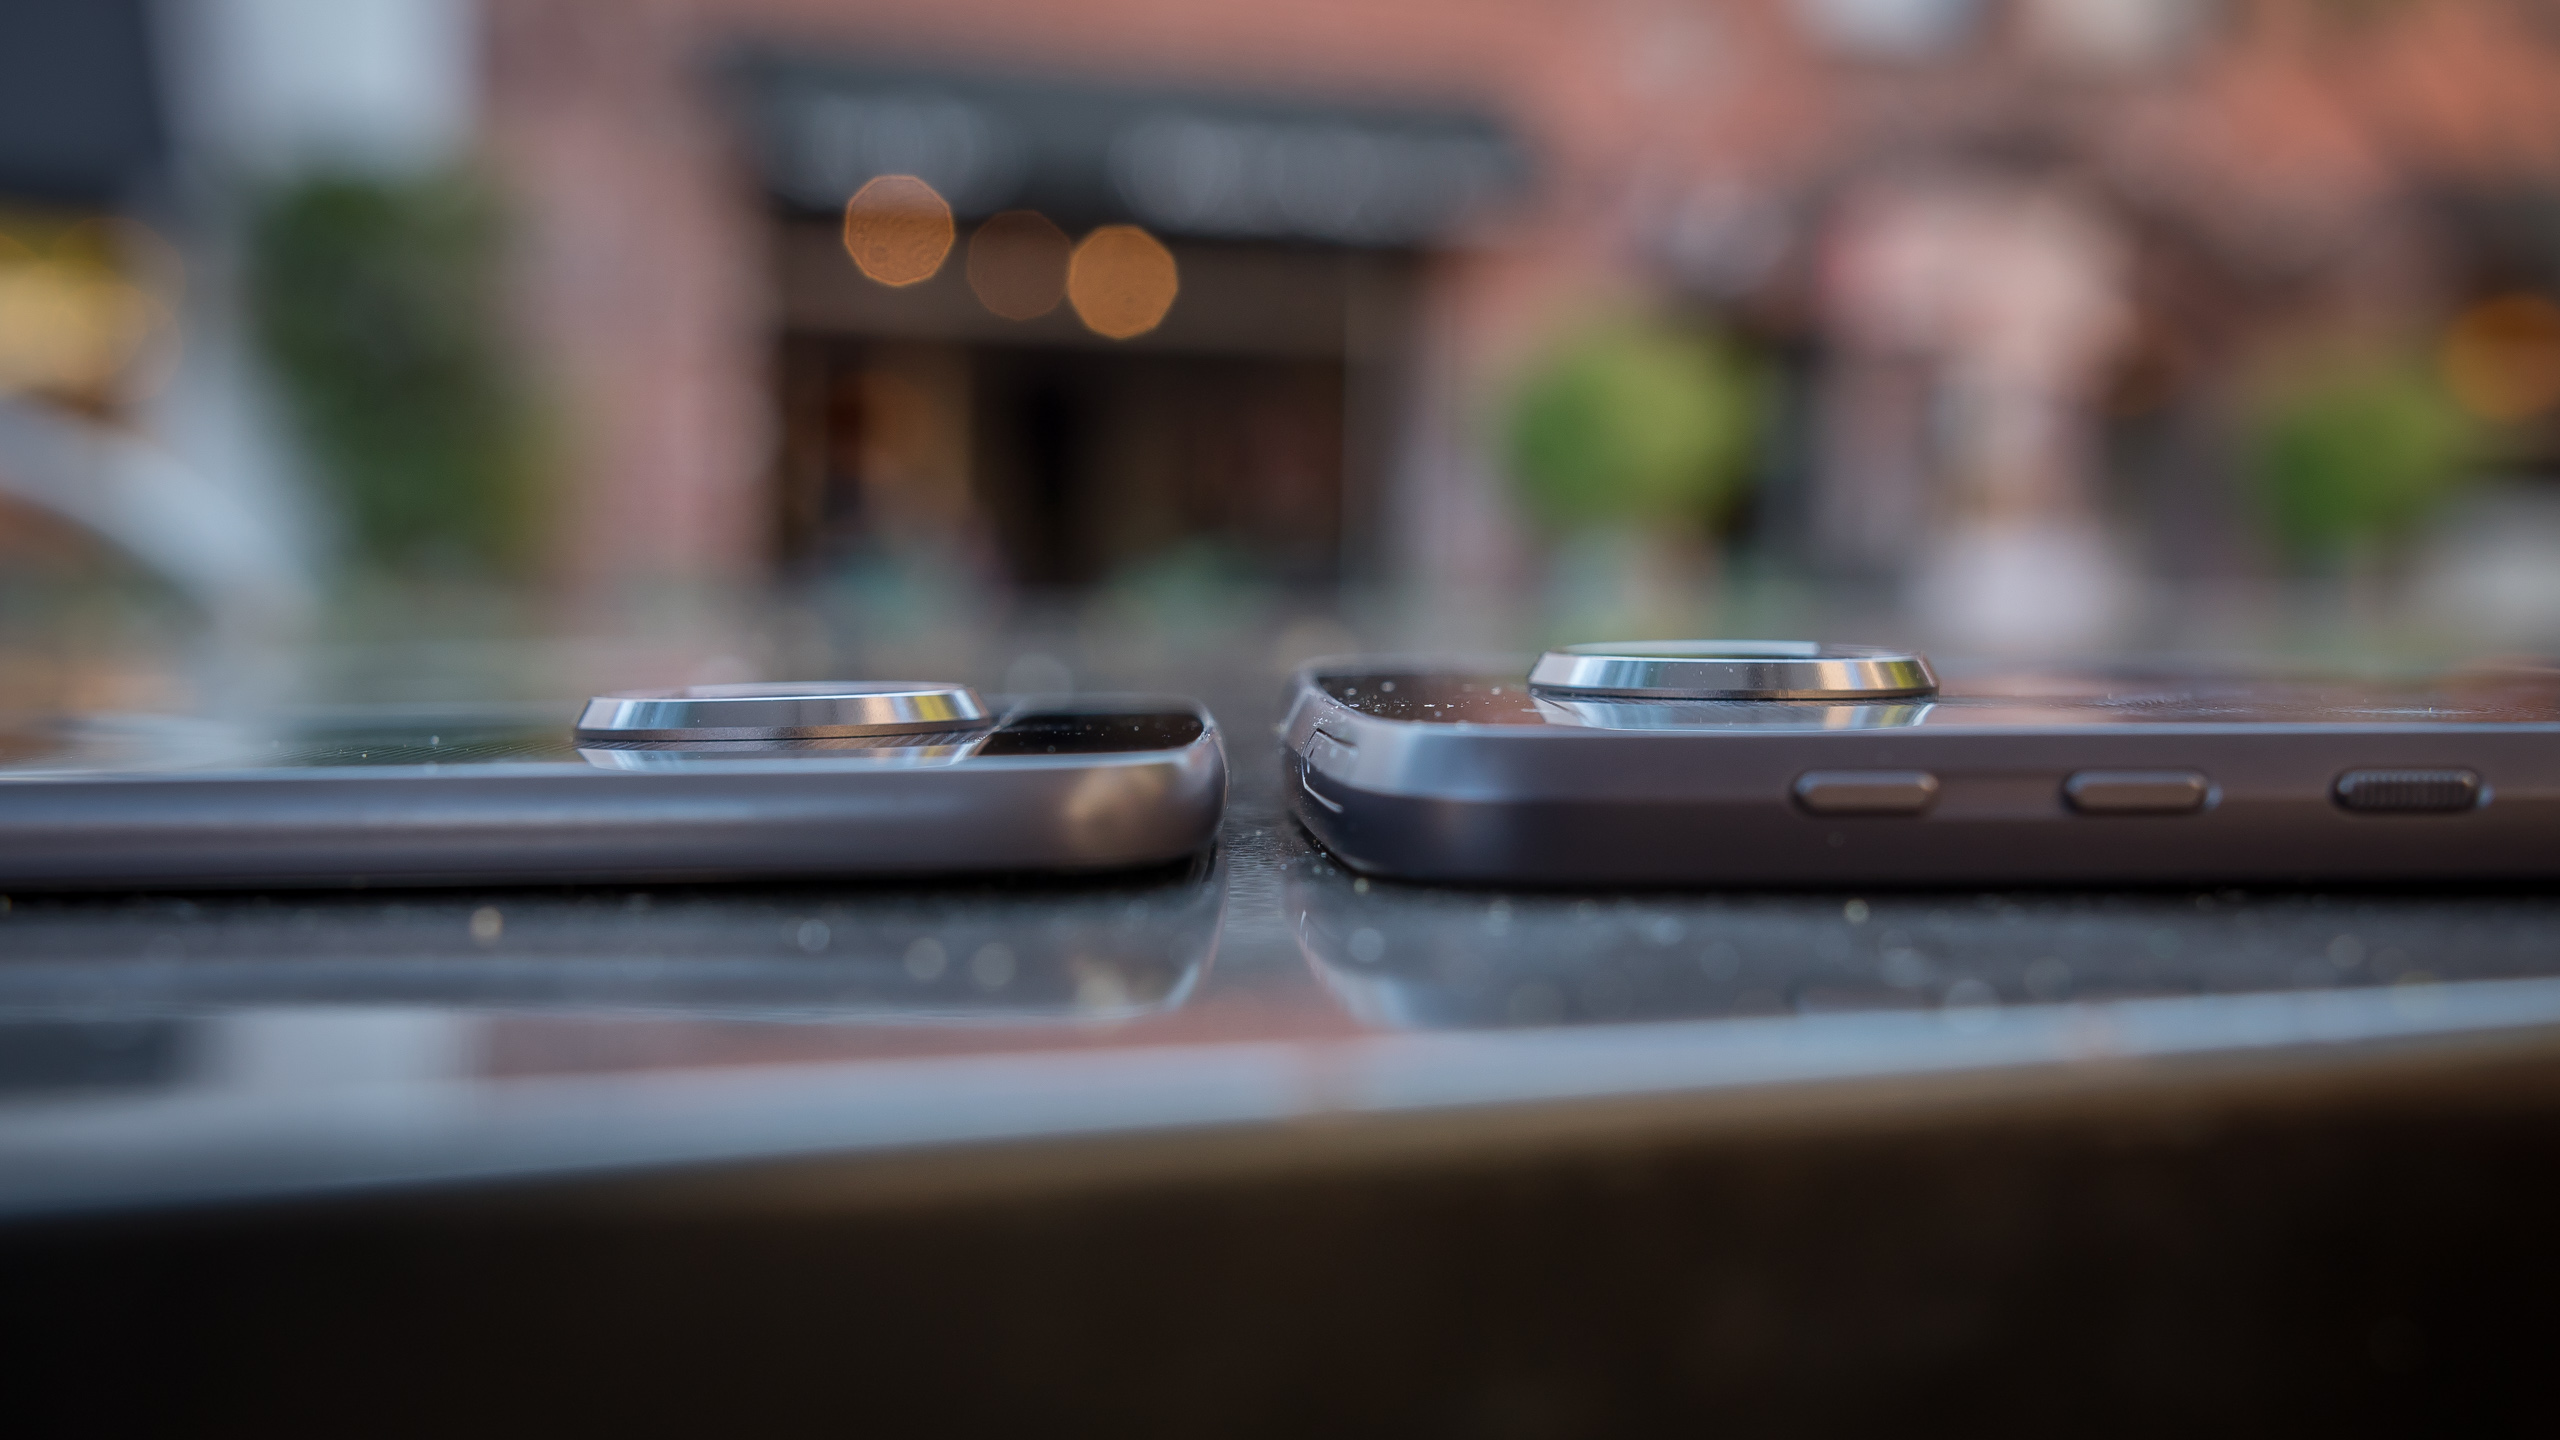 moto z review aa (15 of 24)